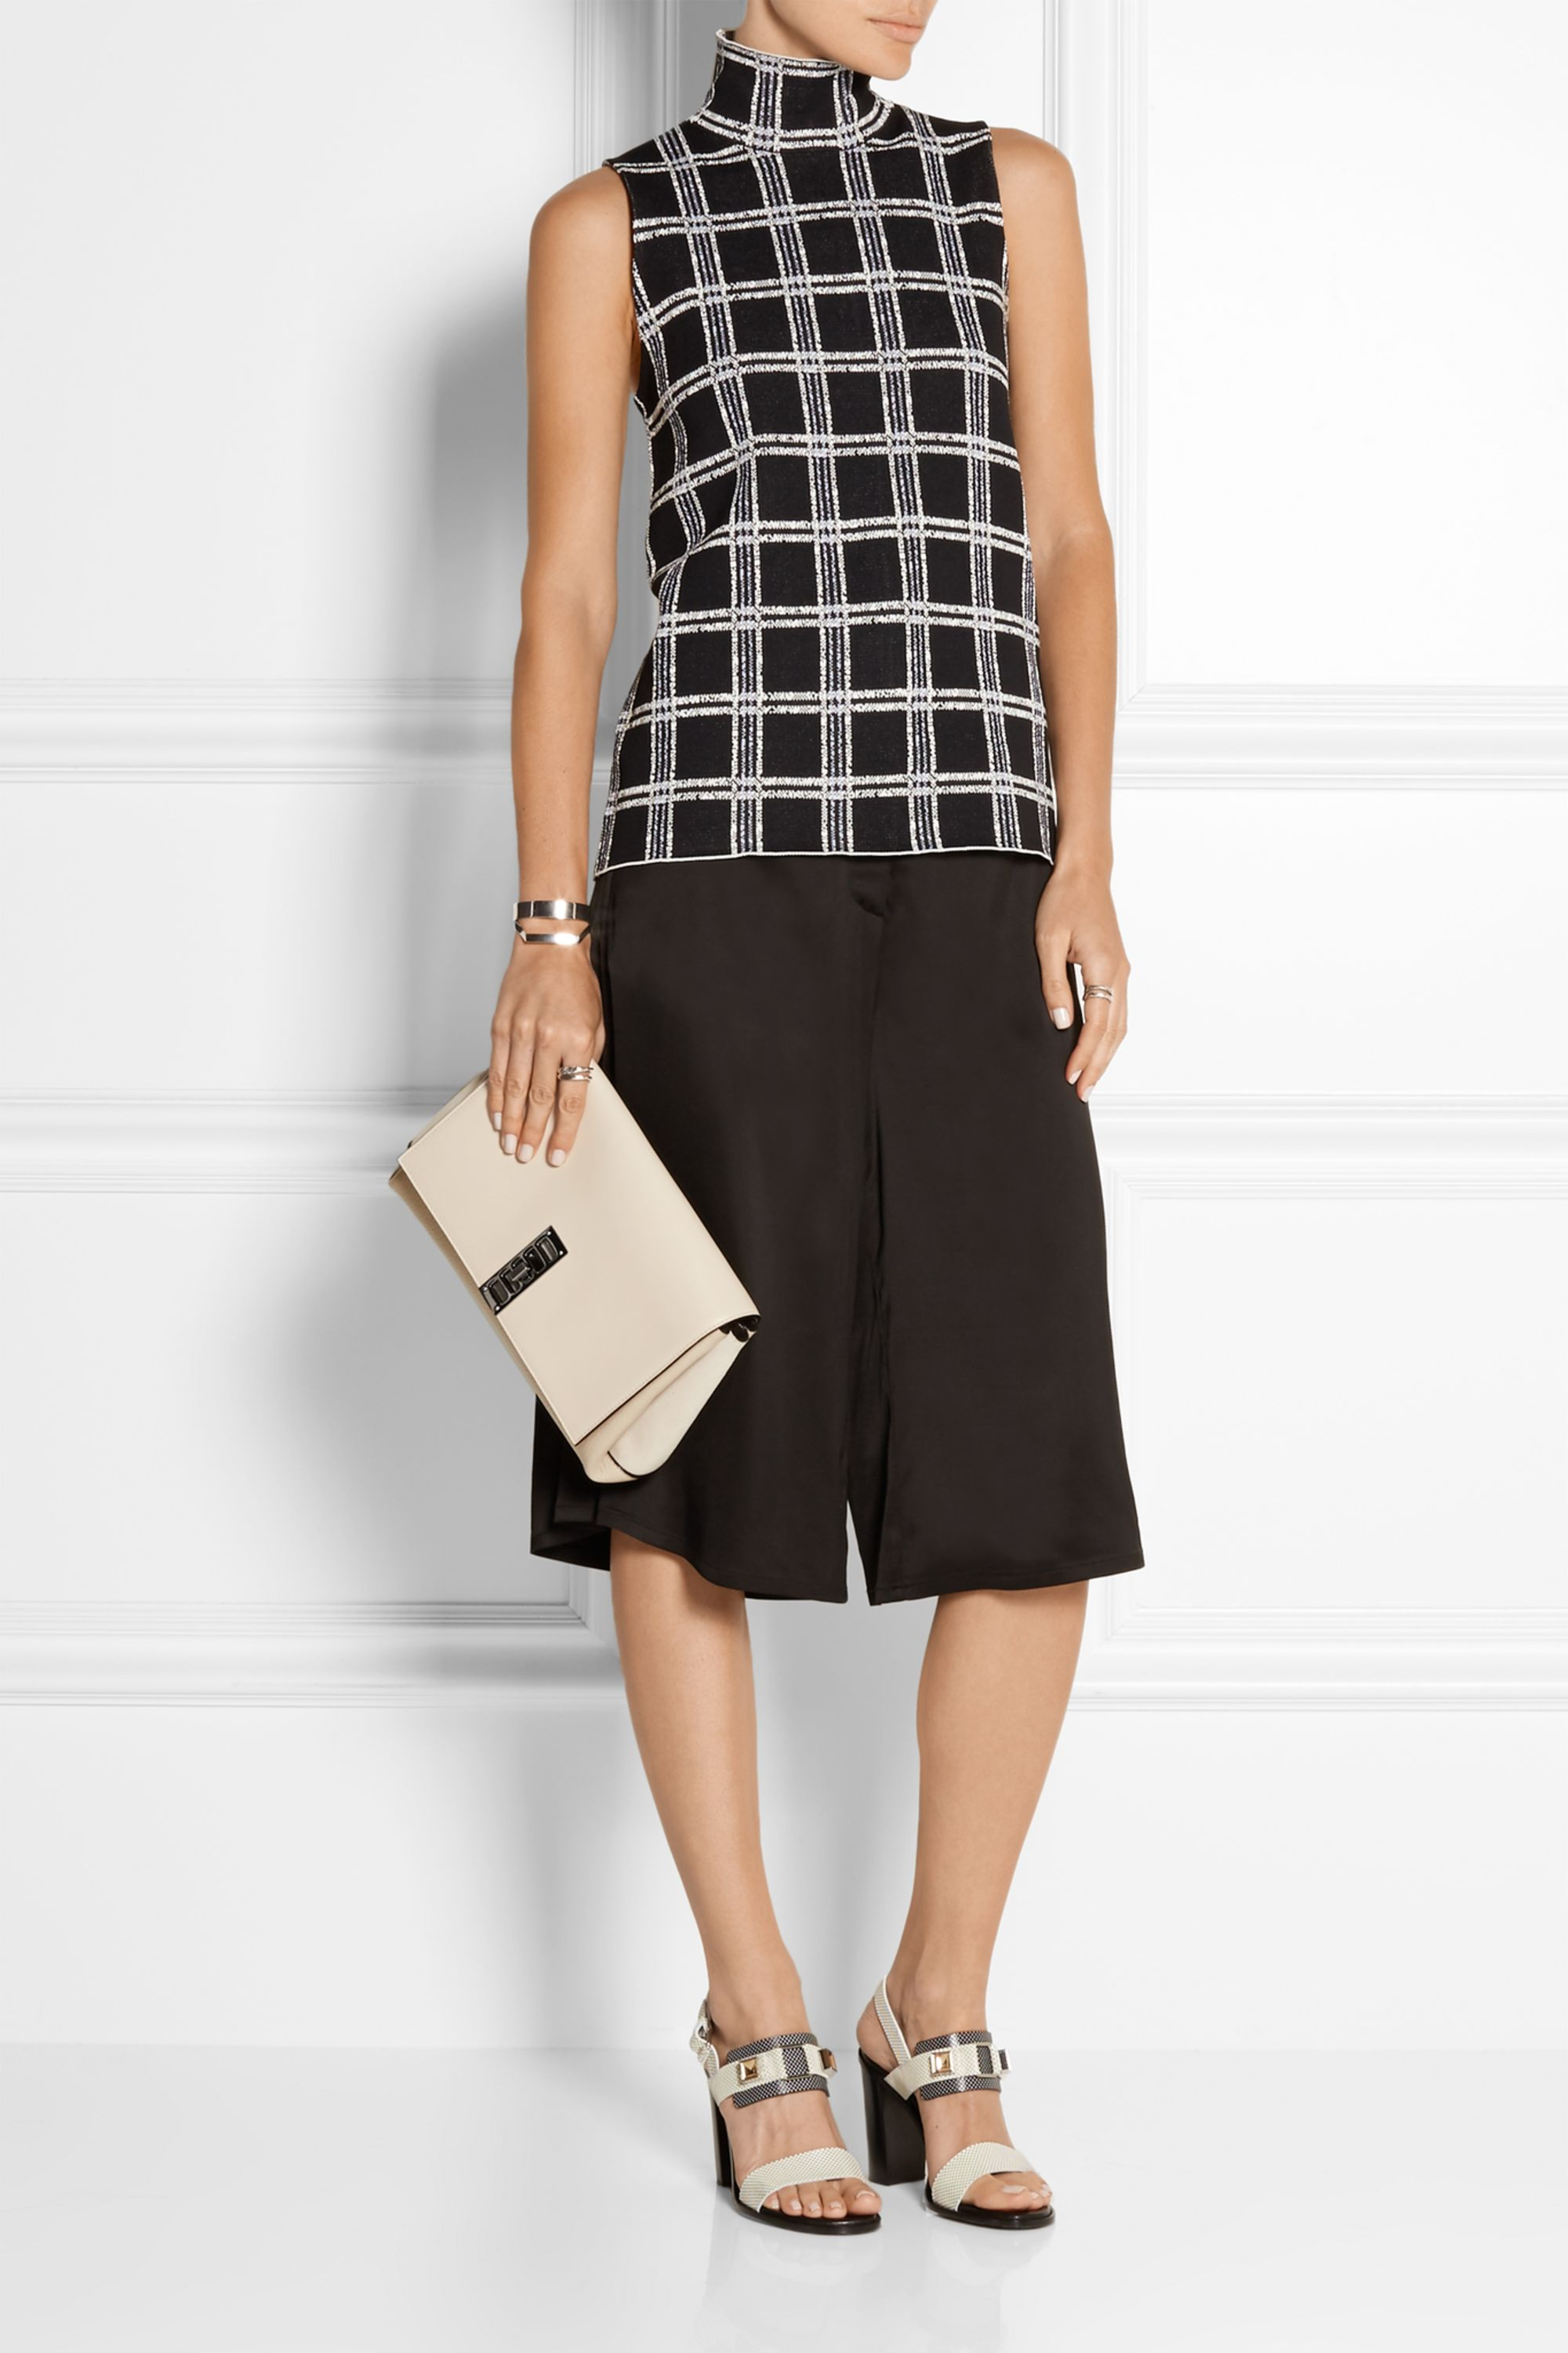 Proenza Schouler Elliot textured-leather and suede clutch